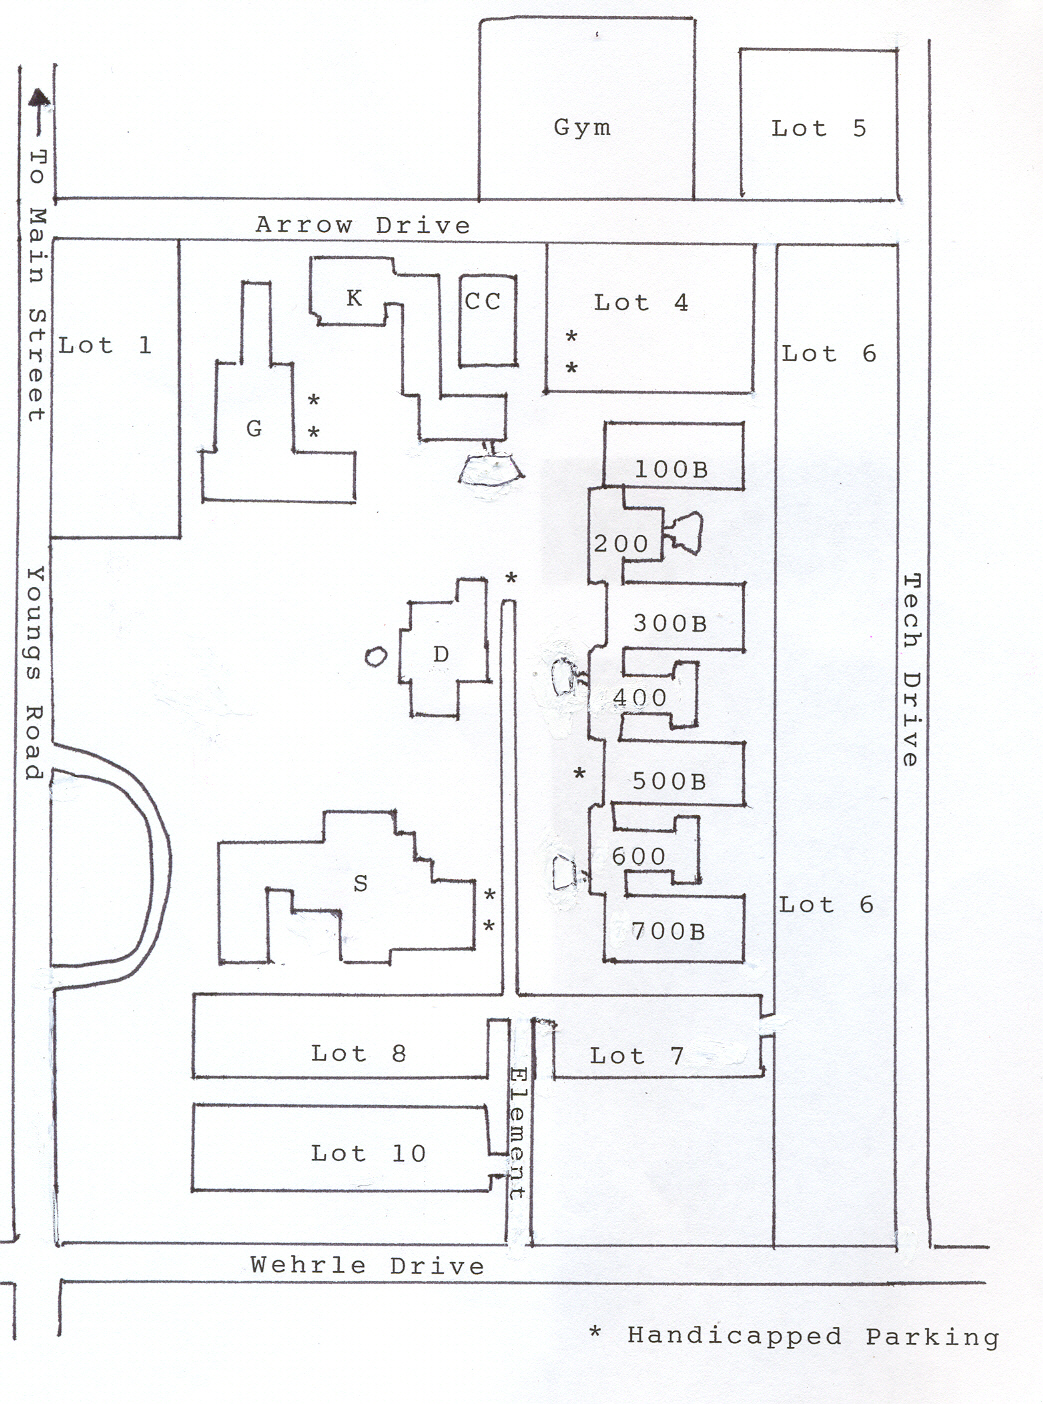 Map of North Campus